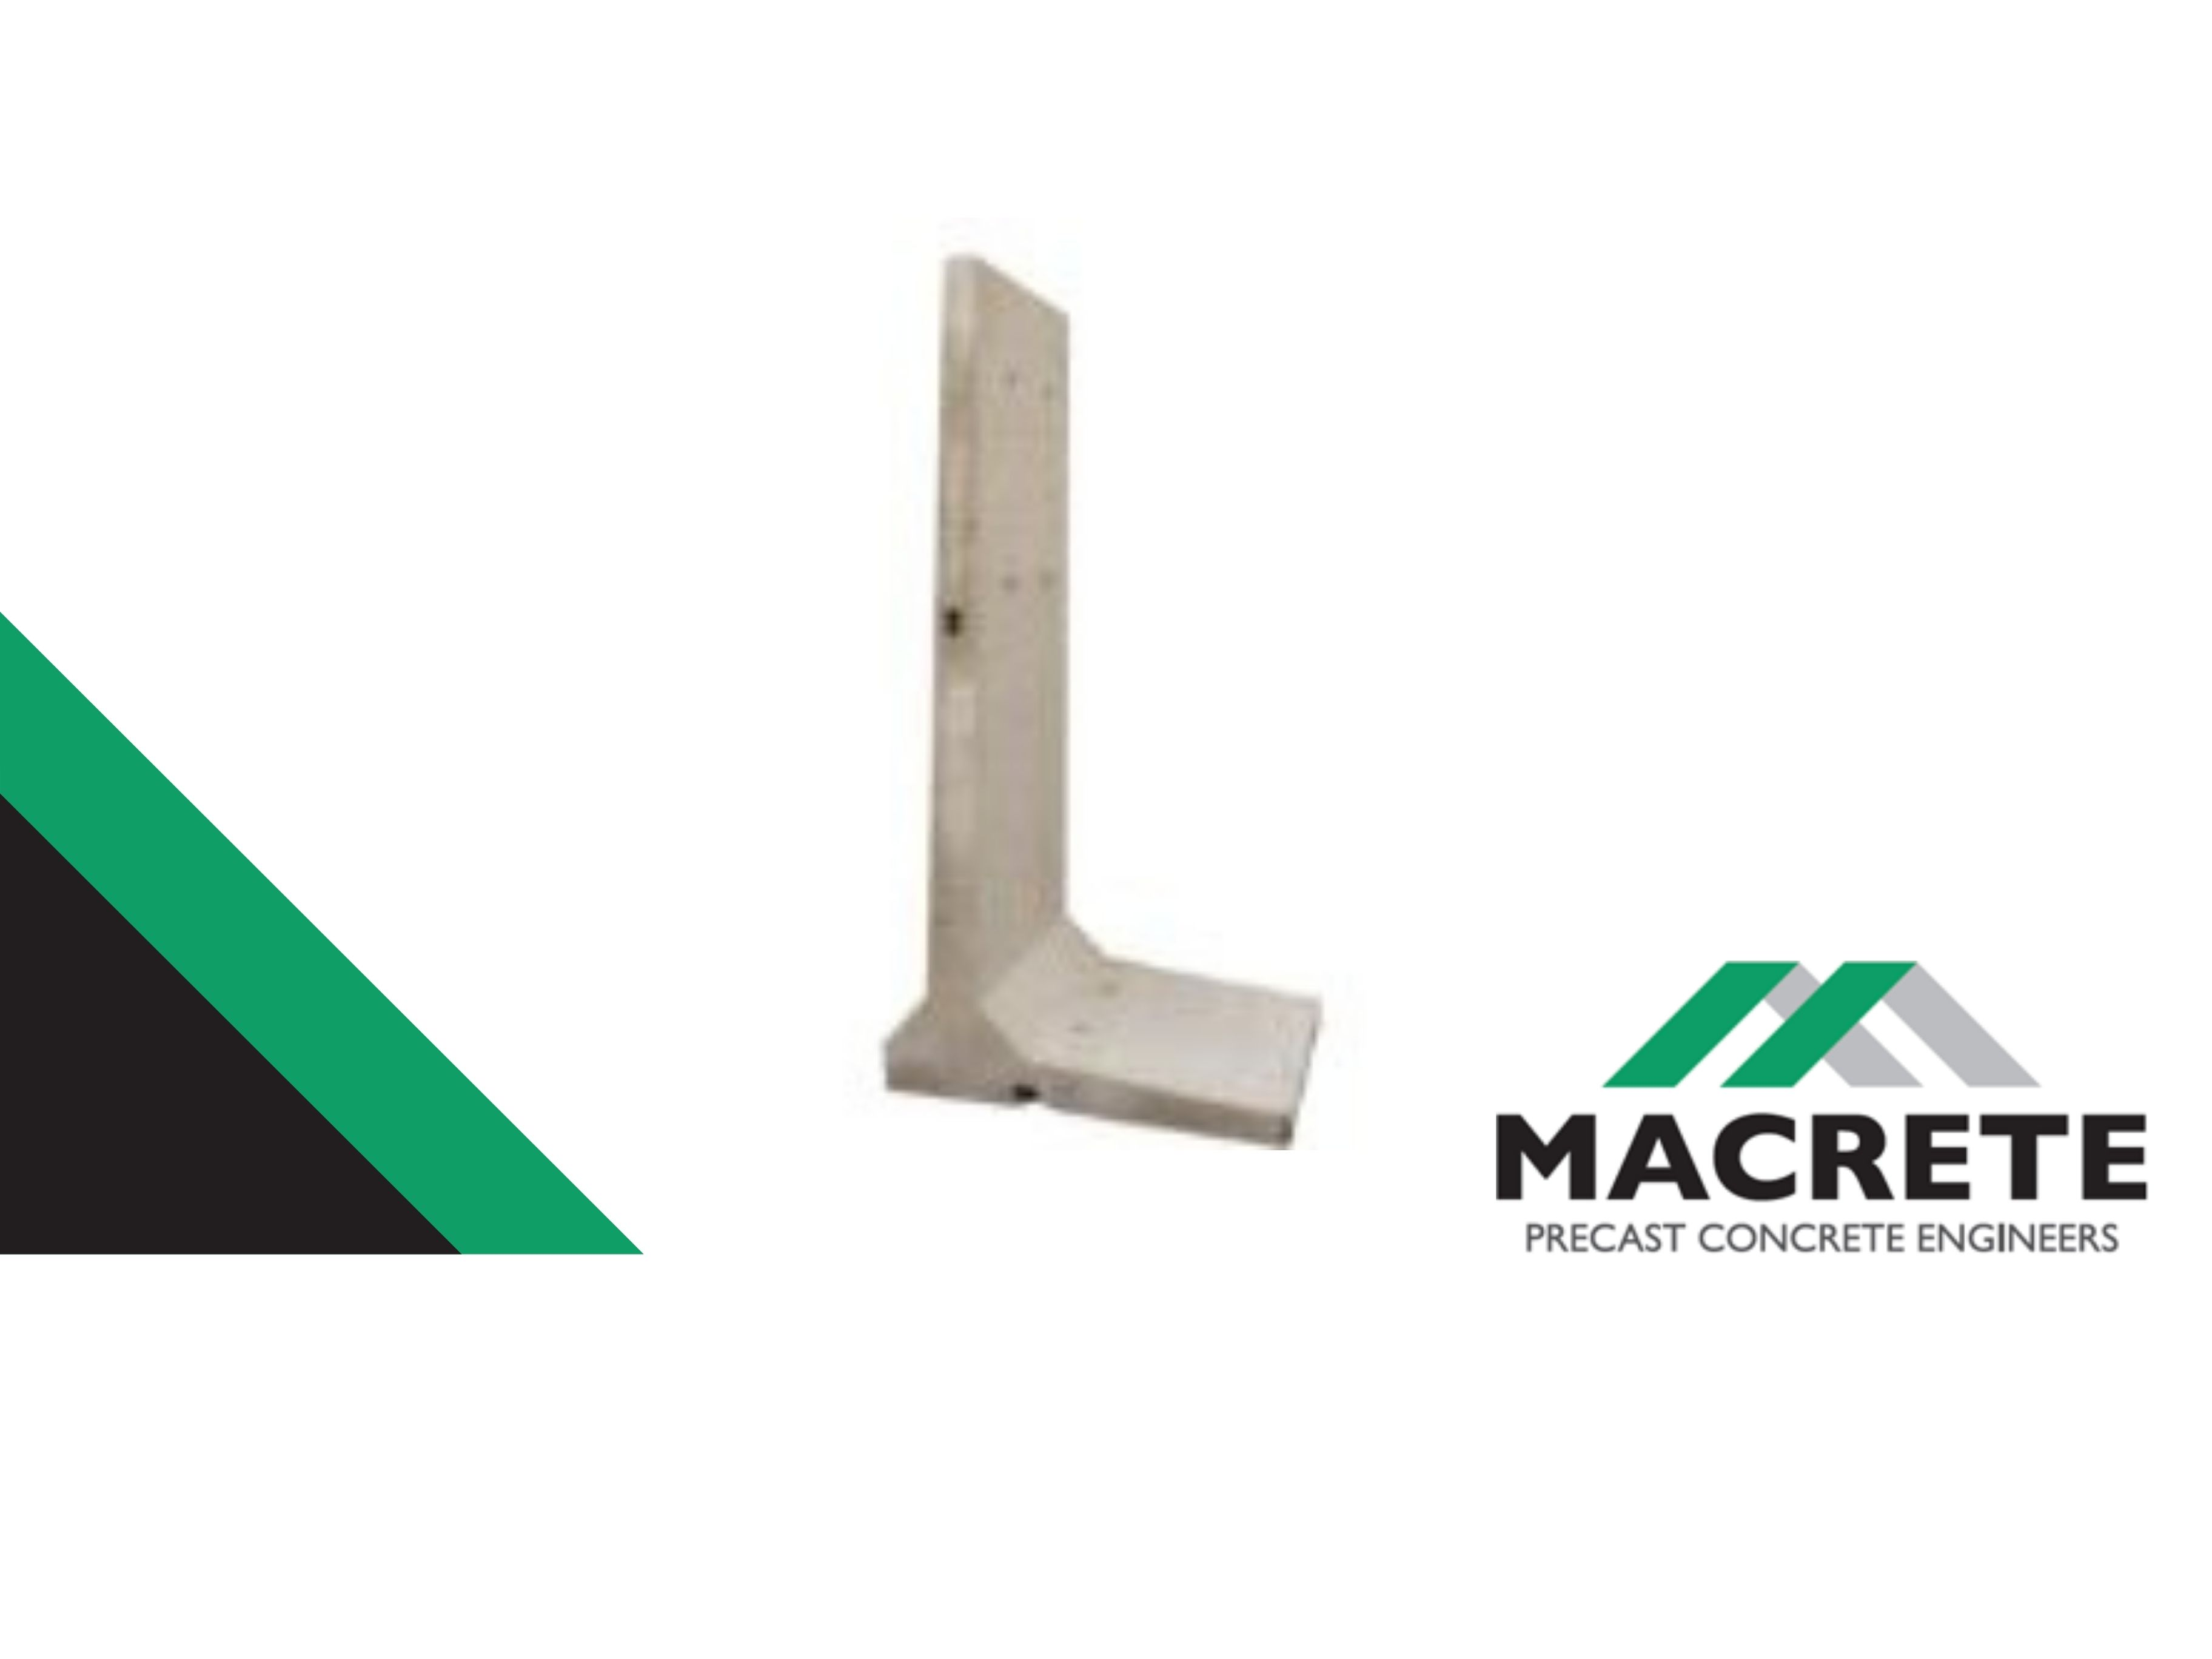 Macrete 2.4m Single Loading Retaining Wall